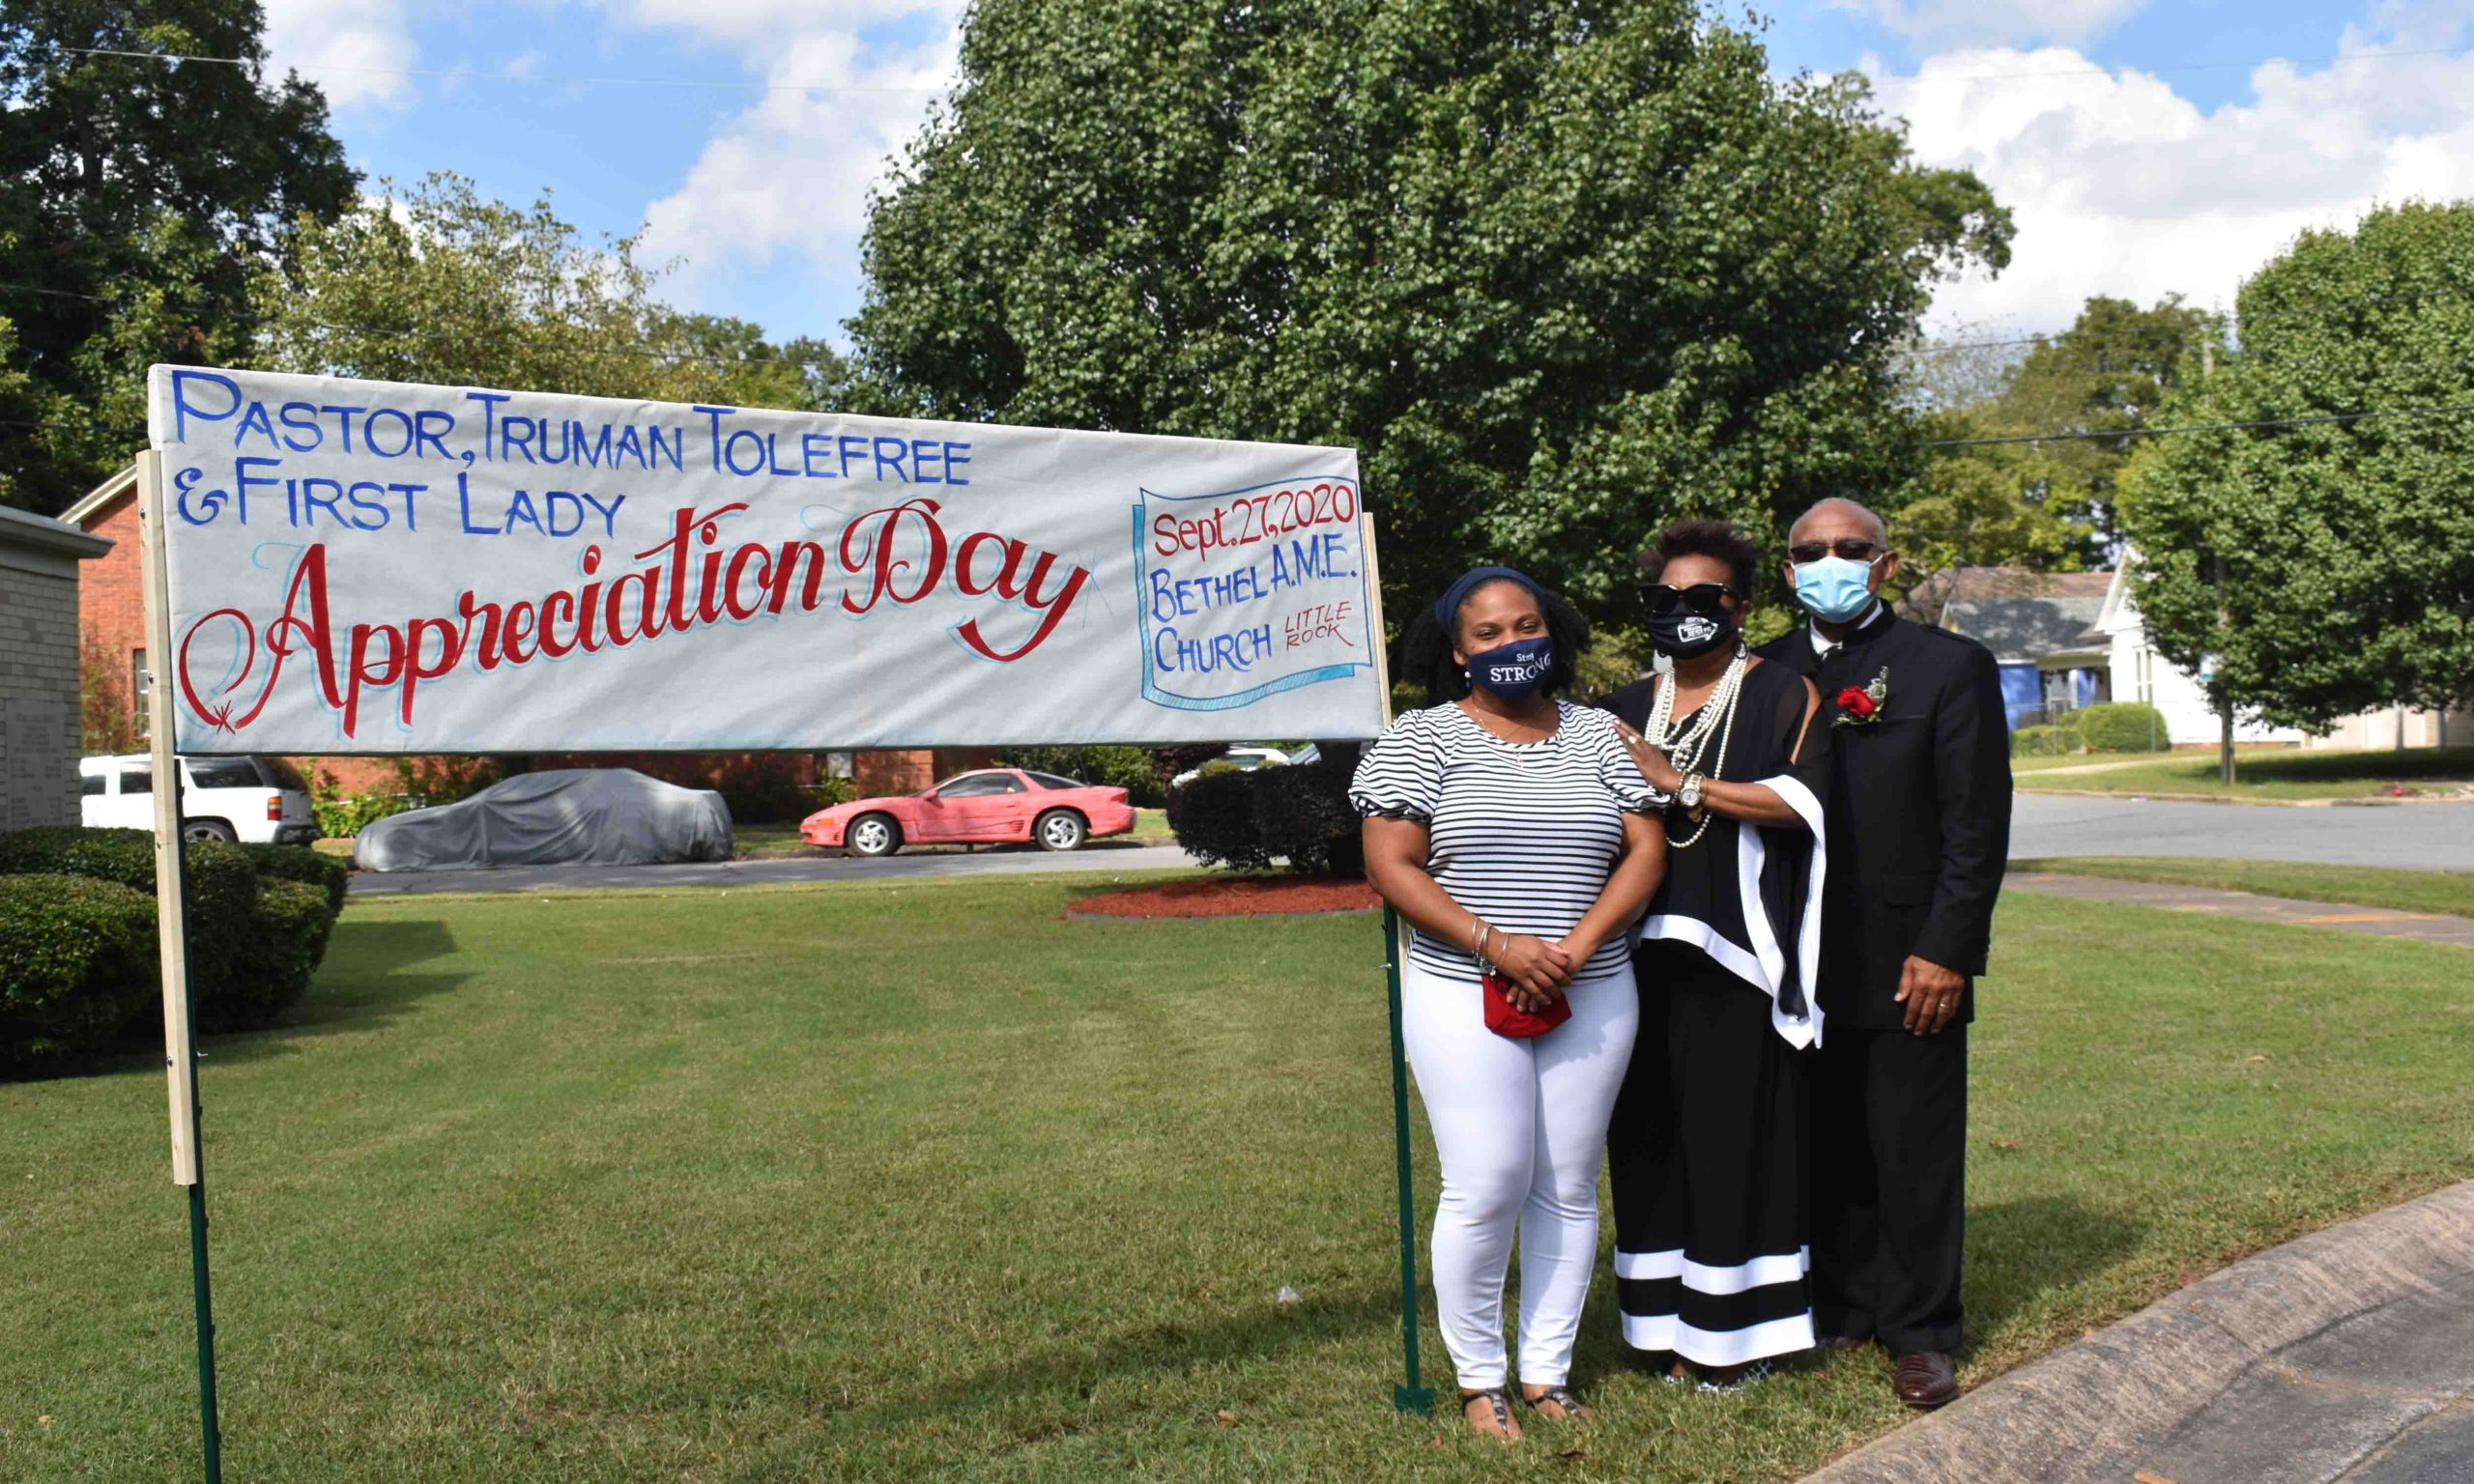 Shannon Tolefree Jackson, Rev. Bettie A. and Pastor Truman Tolefree